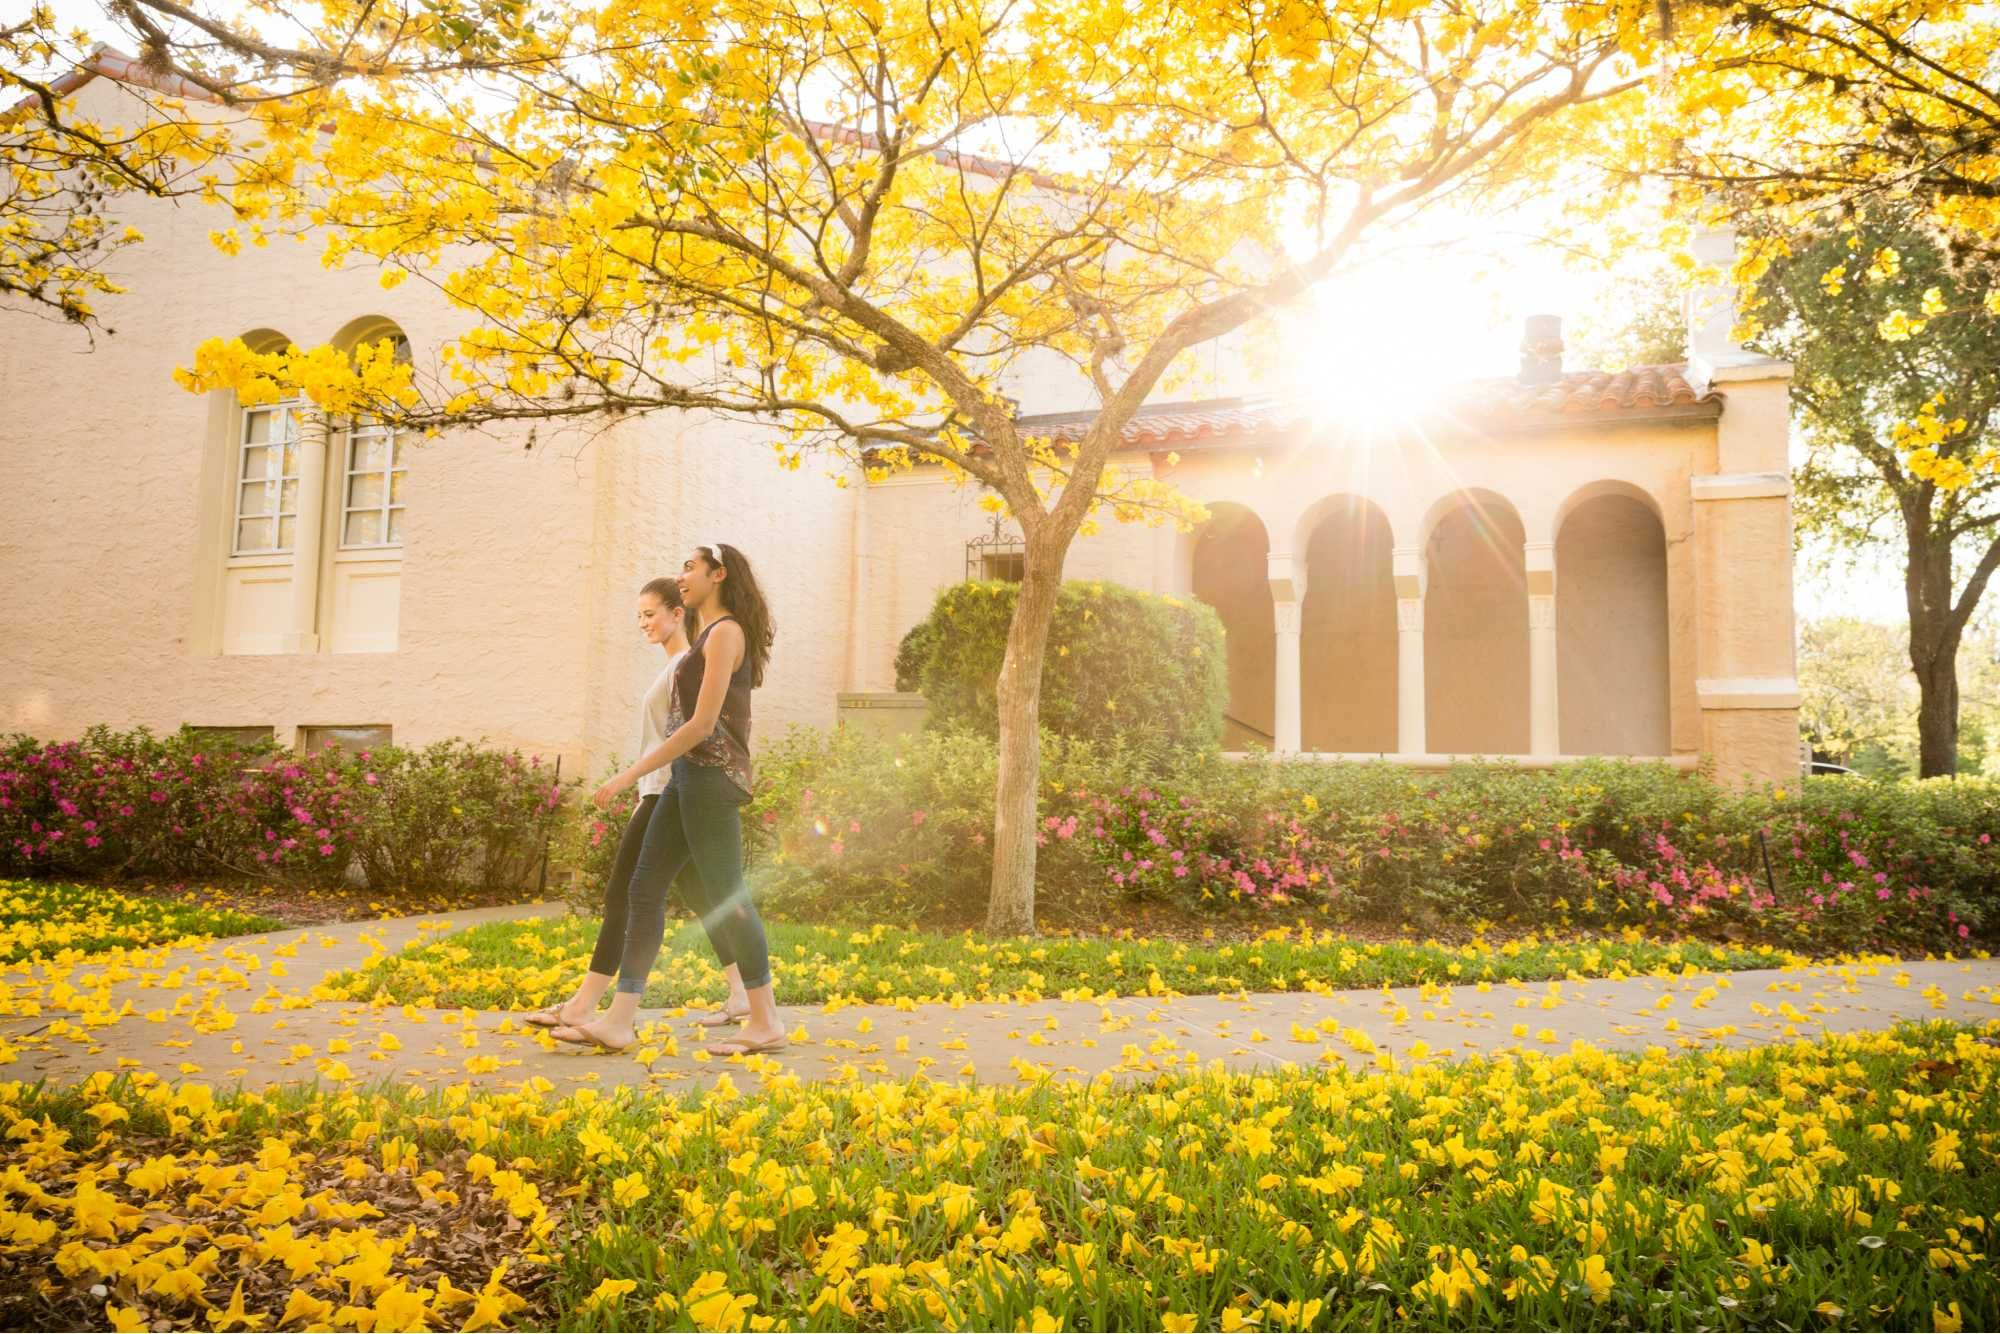 Two students walk down a path strewn with yellow flowers.